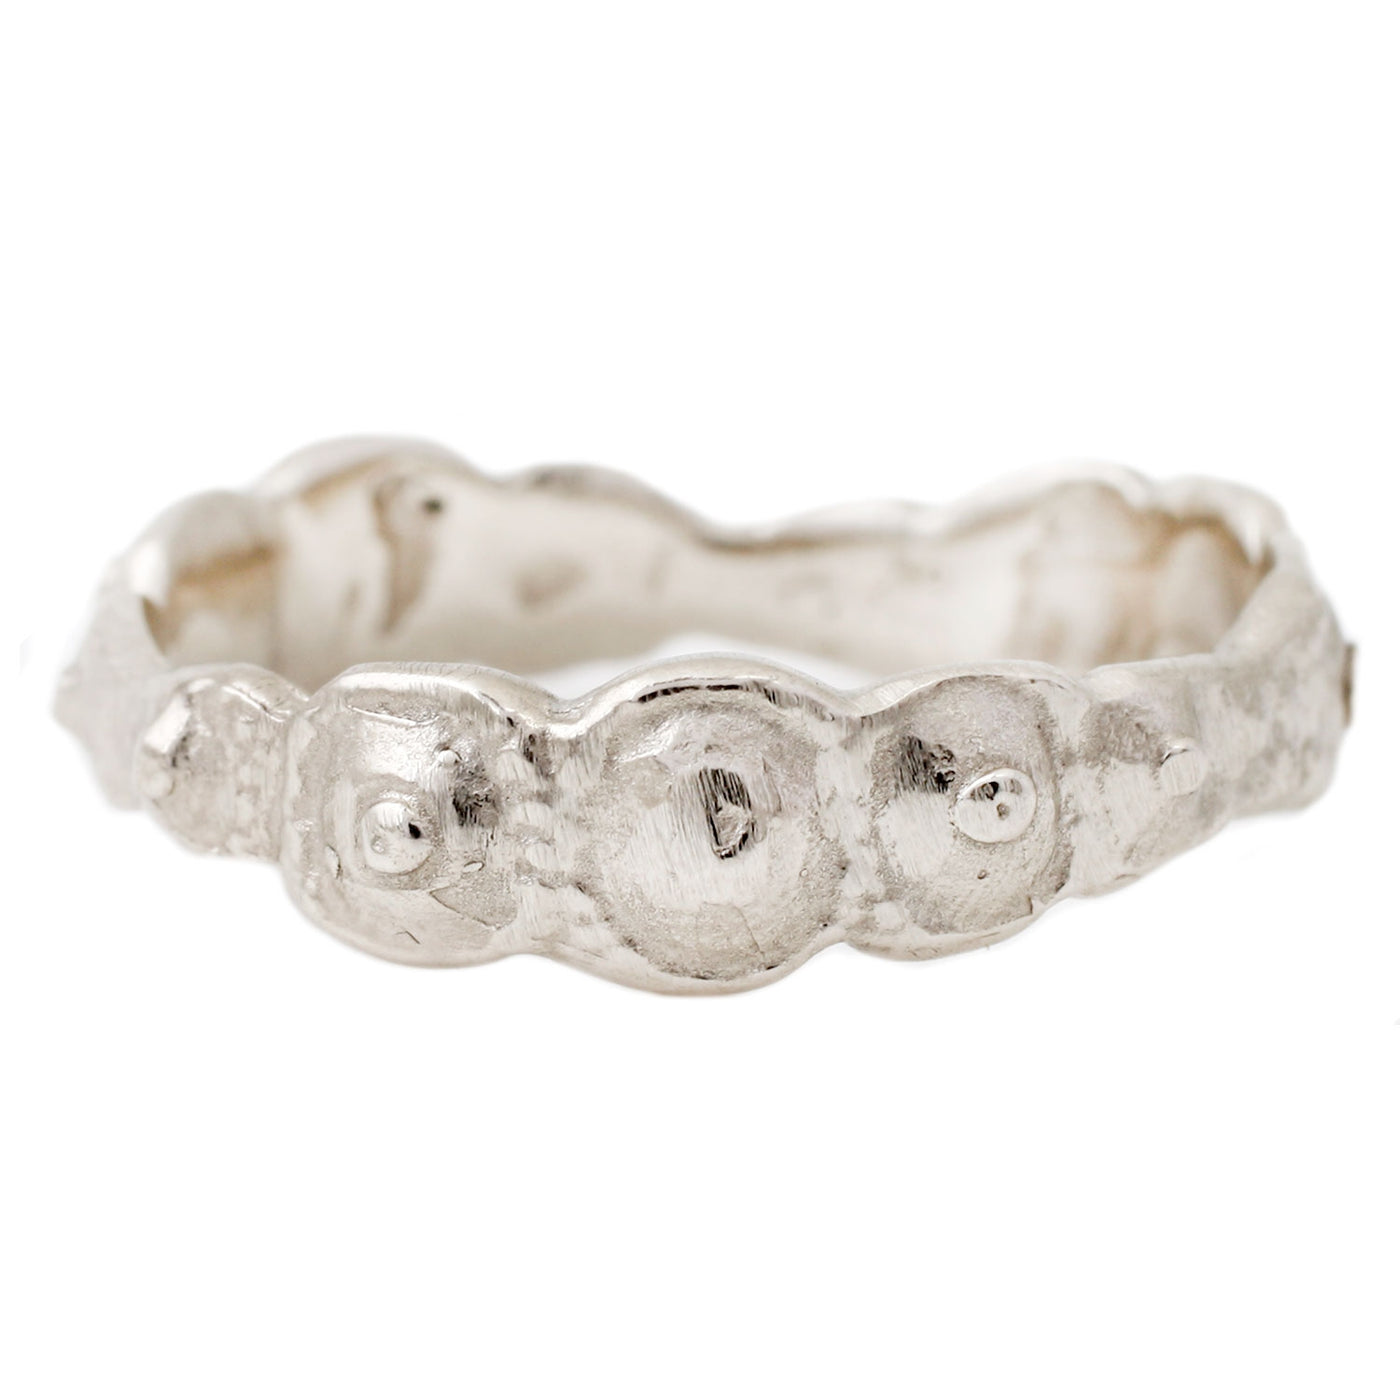 Lauren Wolf Jewelry White Gold Urchin Bubbles Band